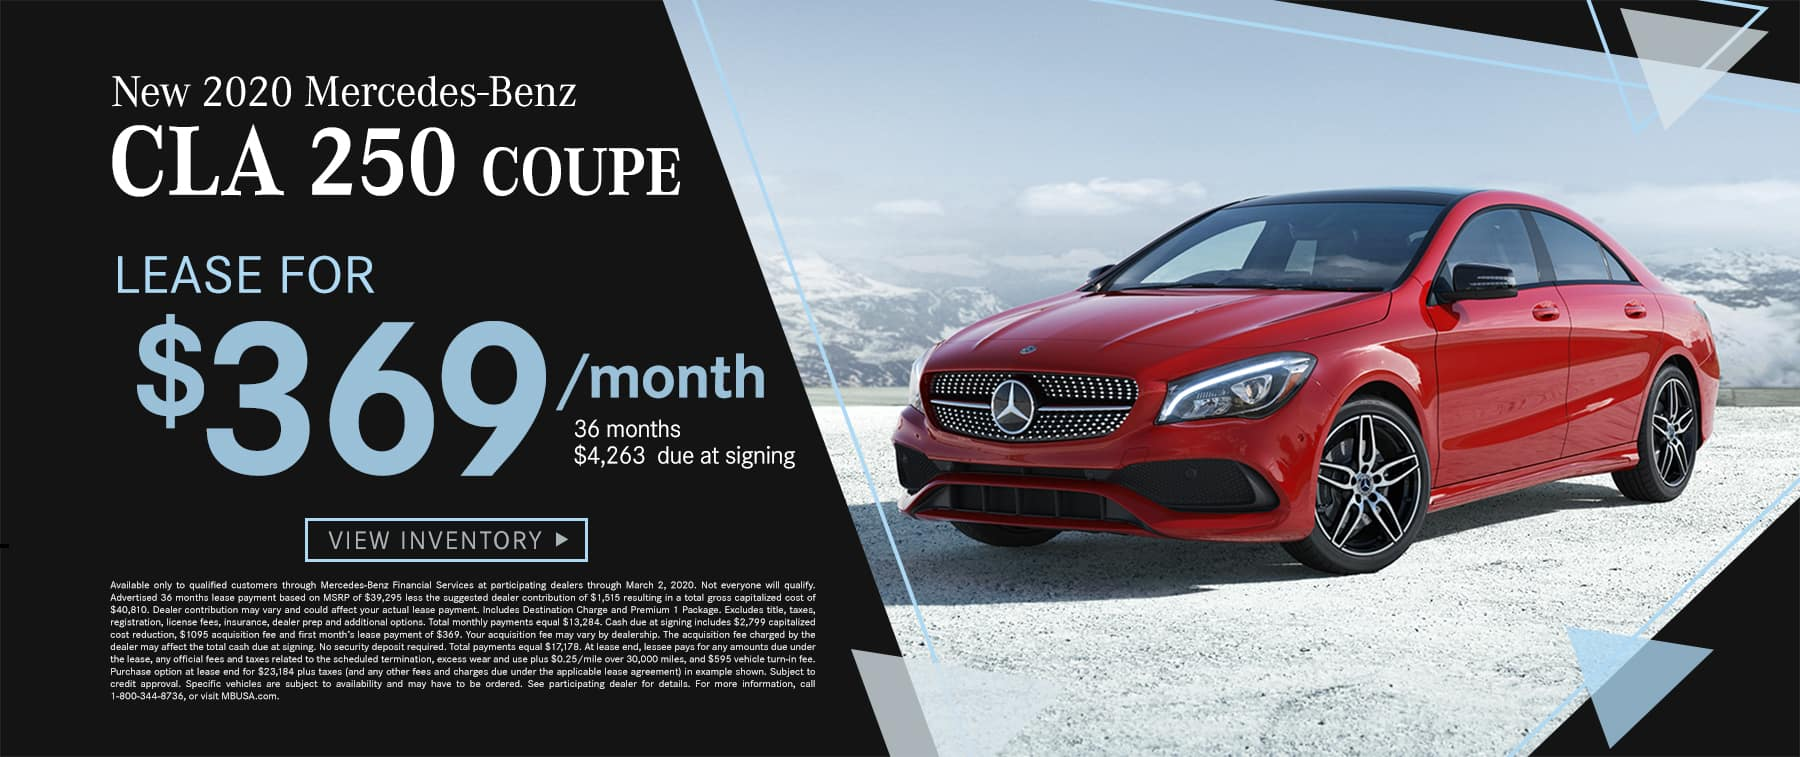 2020 CLA 250 Coupe$269 Per Month 36 Months